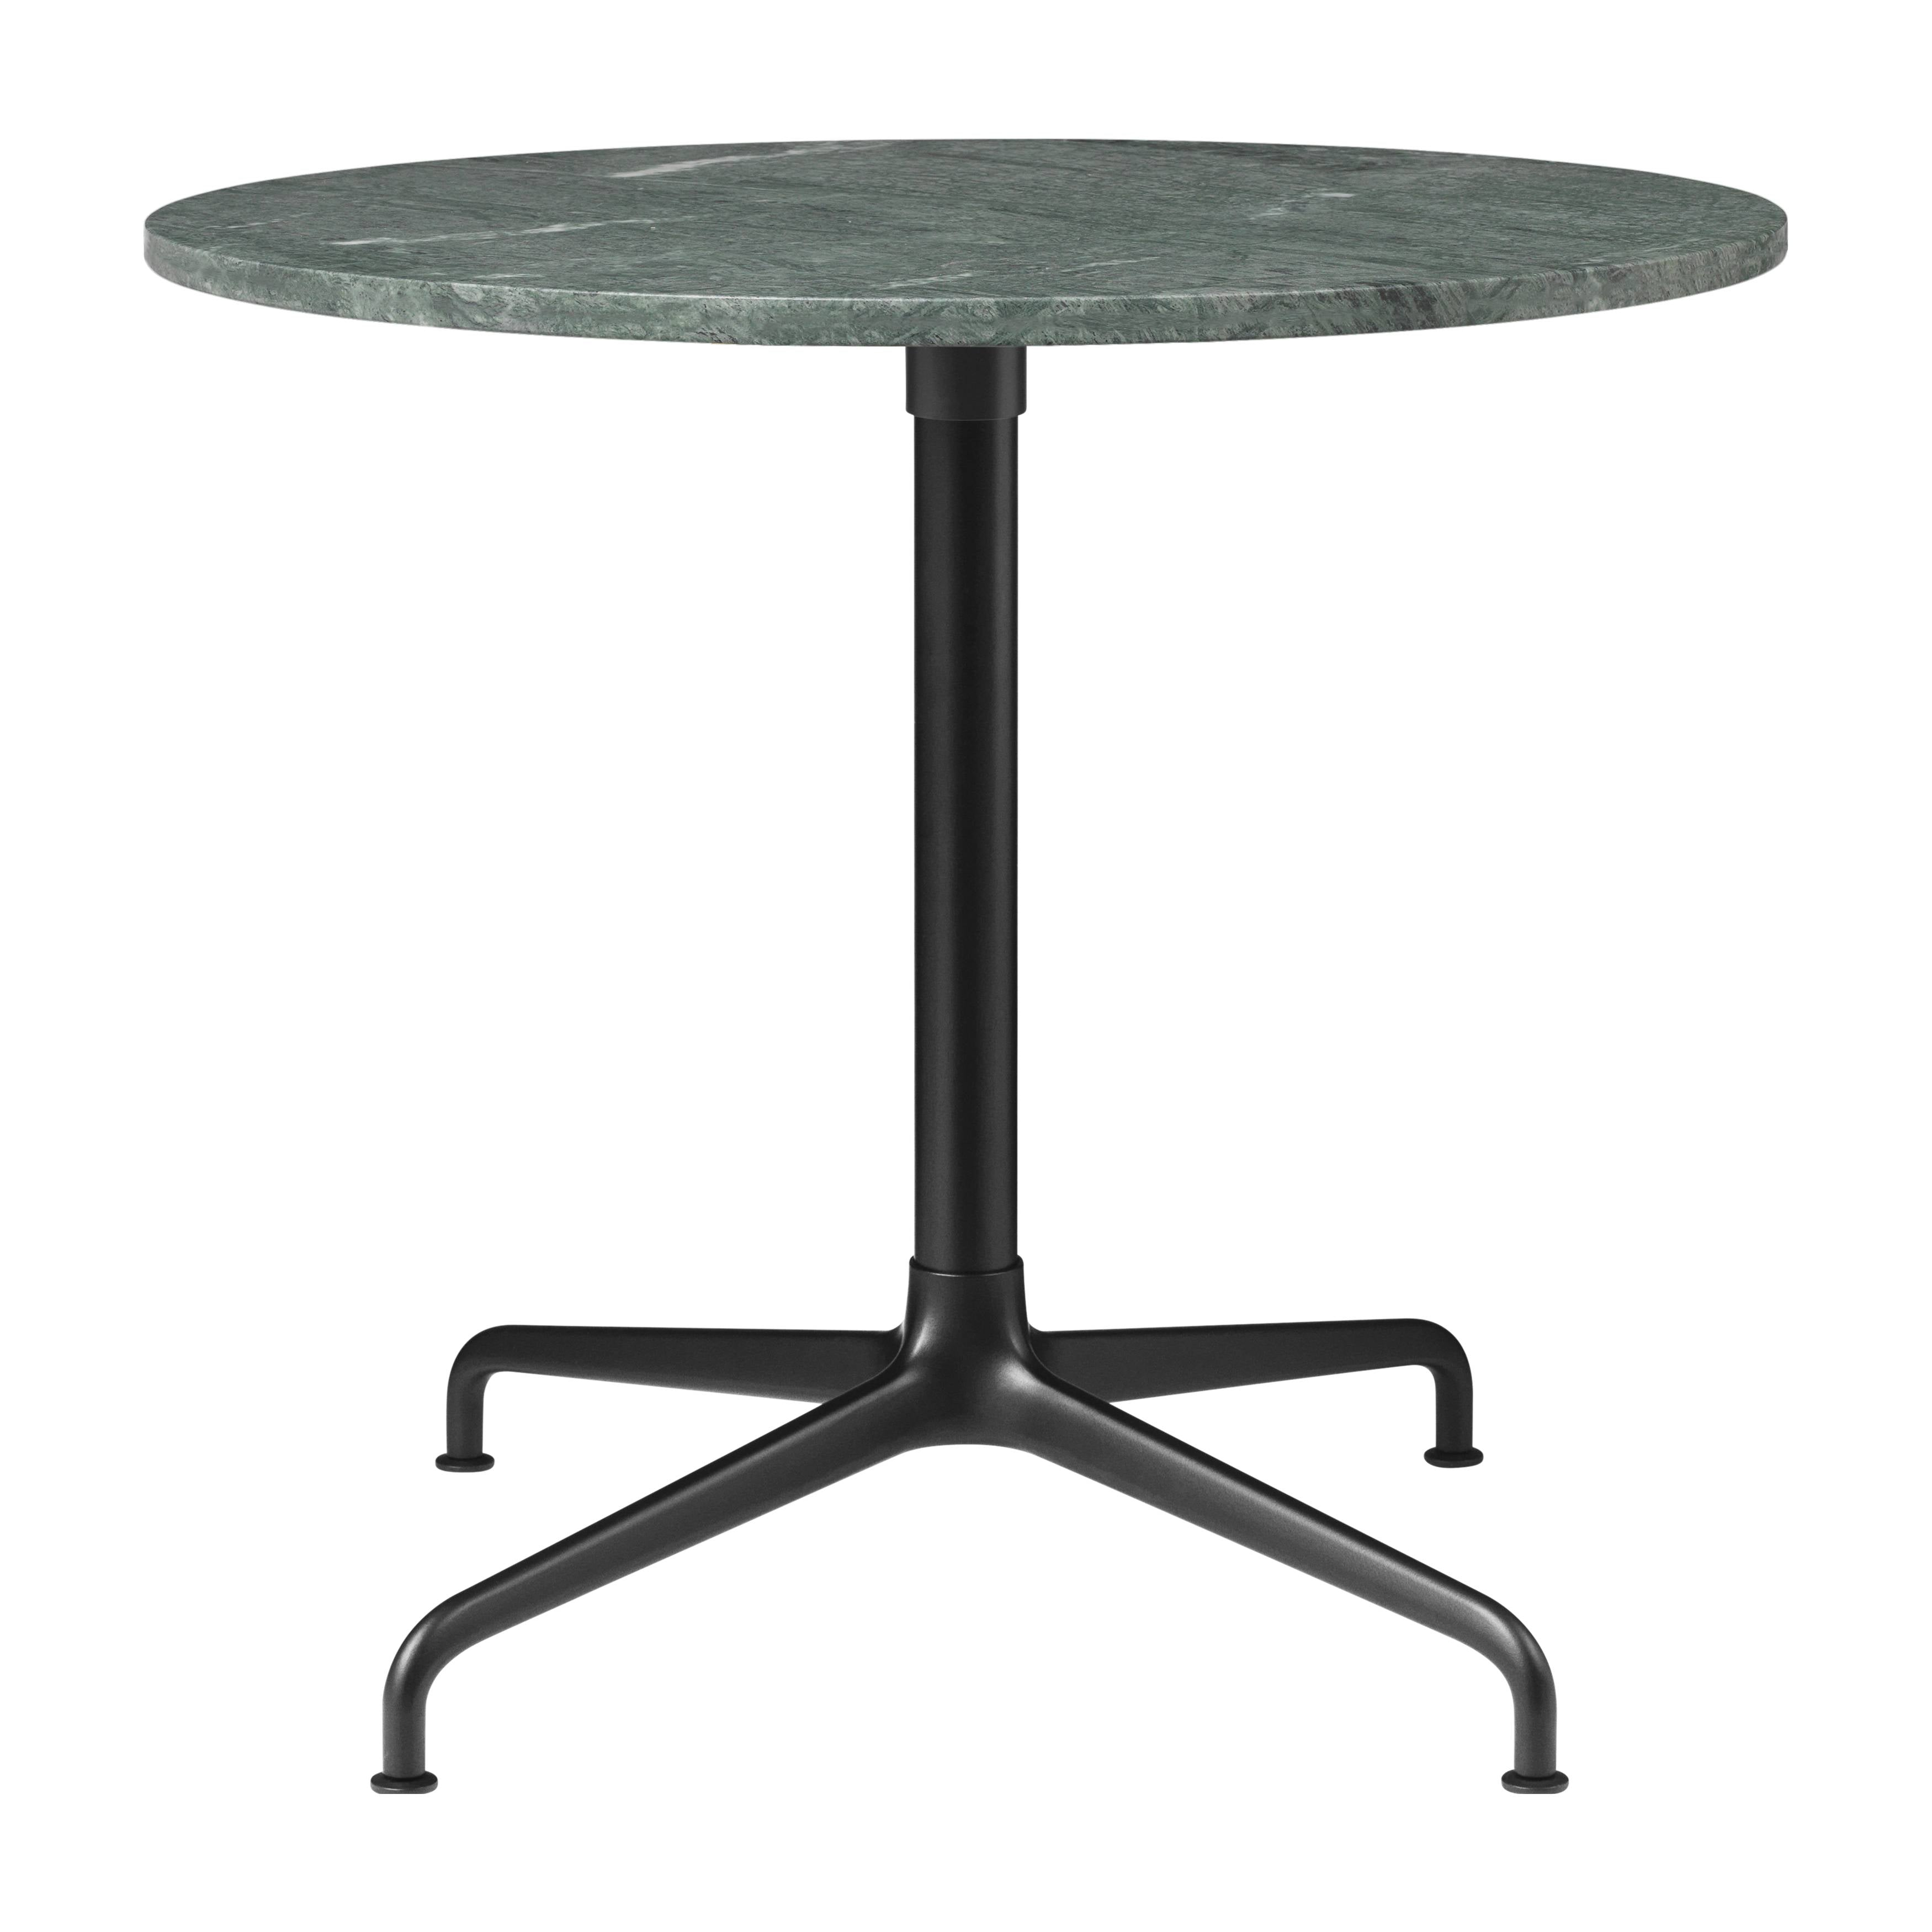 Beetle Lounge Table: Round + Small + Green Guatemala Marble + Black Matte Base